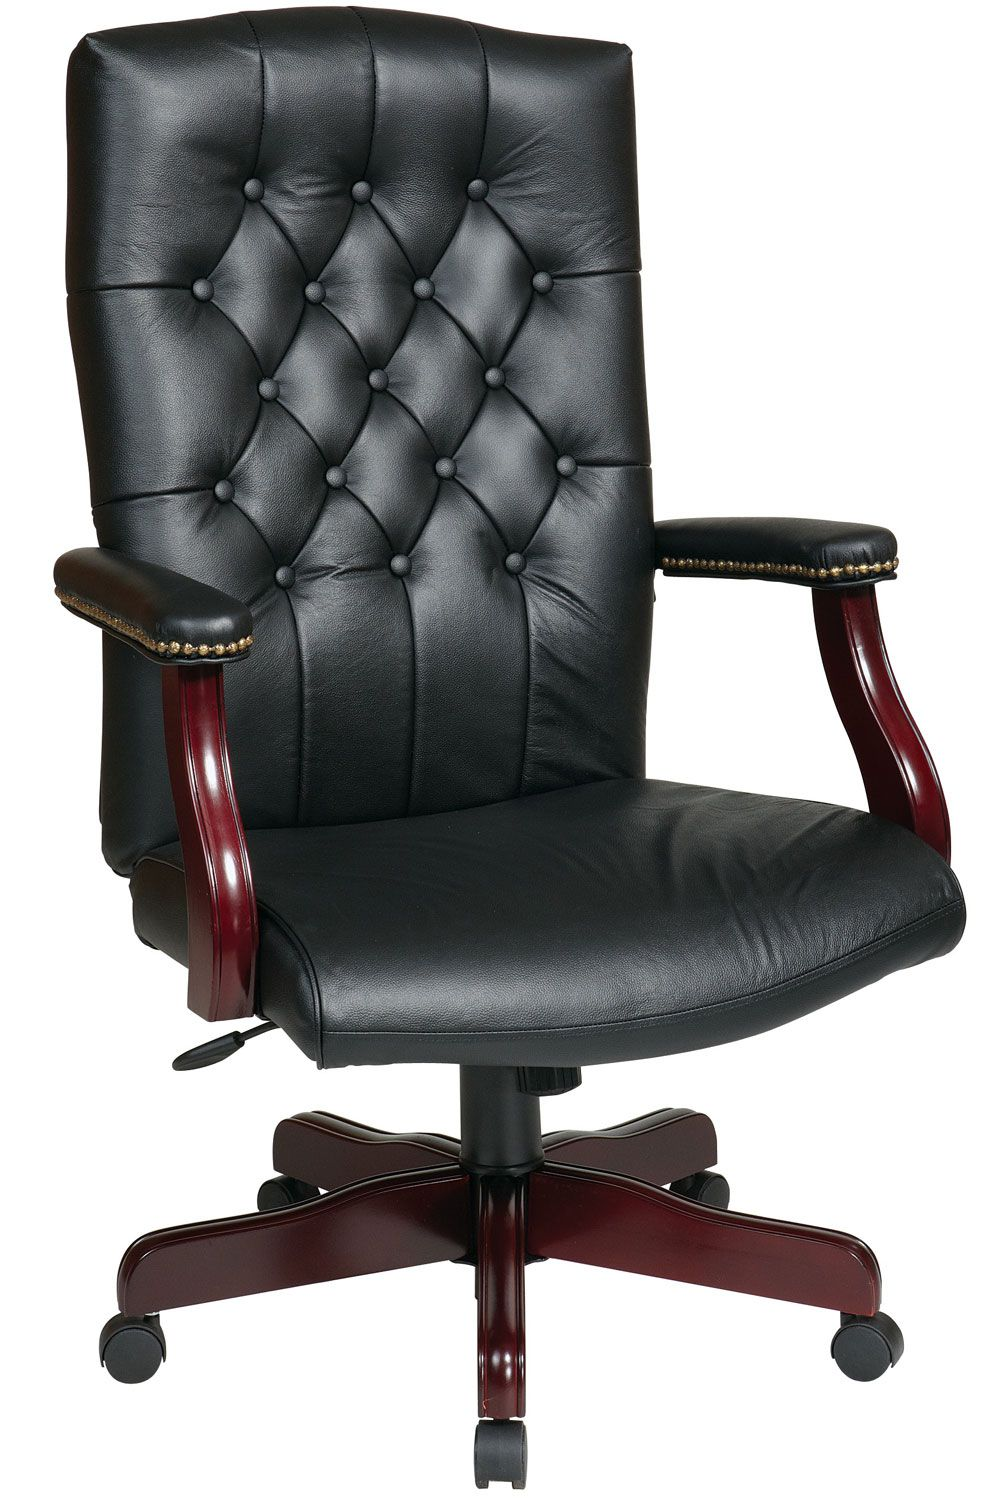 tex232l 3 office star traditional black leather executive office chair leather office chairs. Black Bedroom Furniture Sets. Home Design Ideas